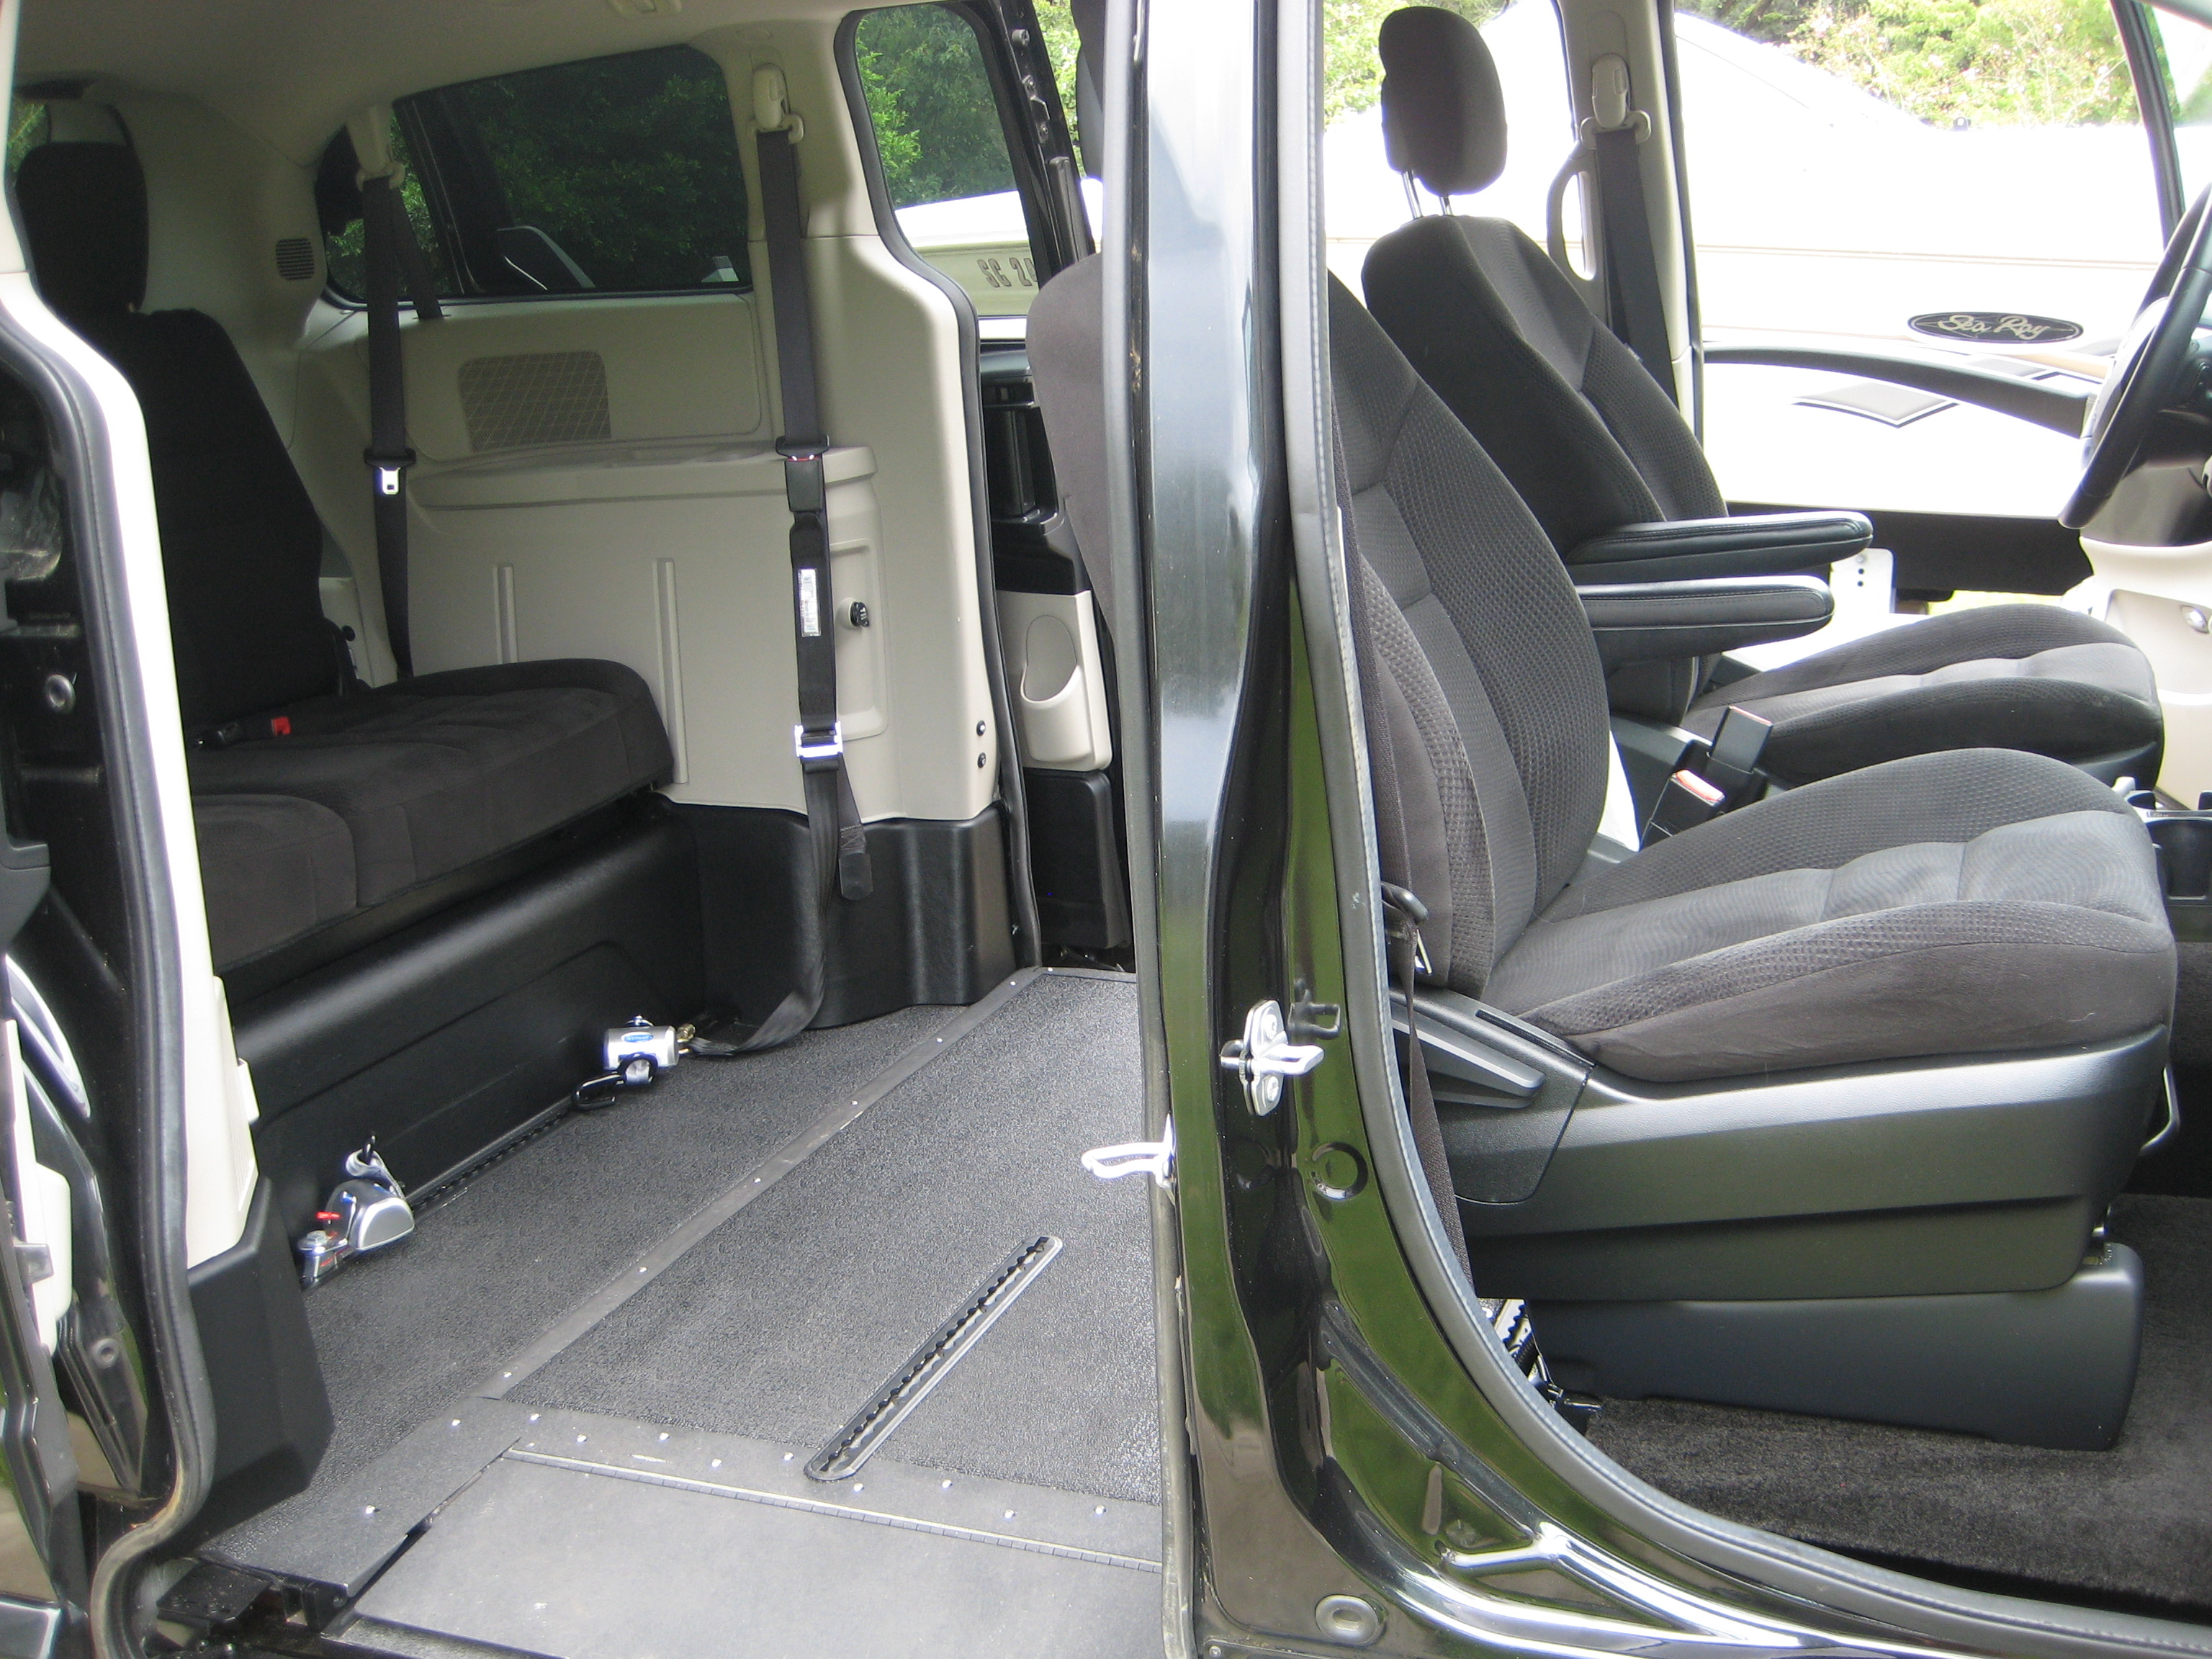 Photo 4 of Mobility Van